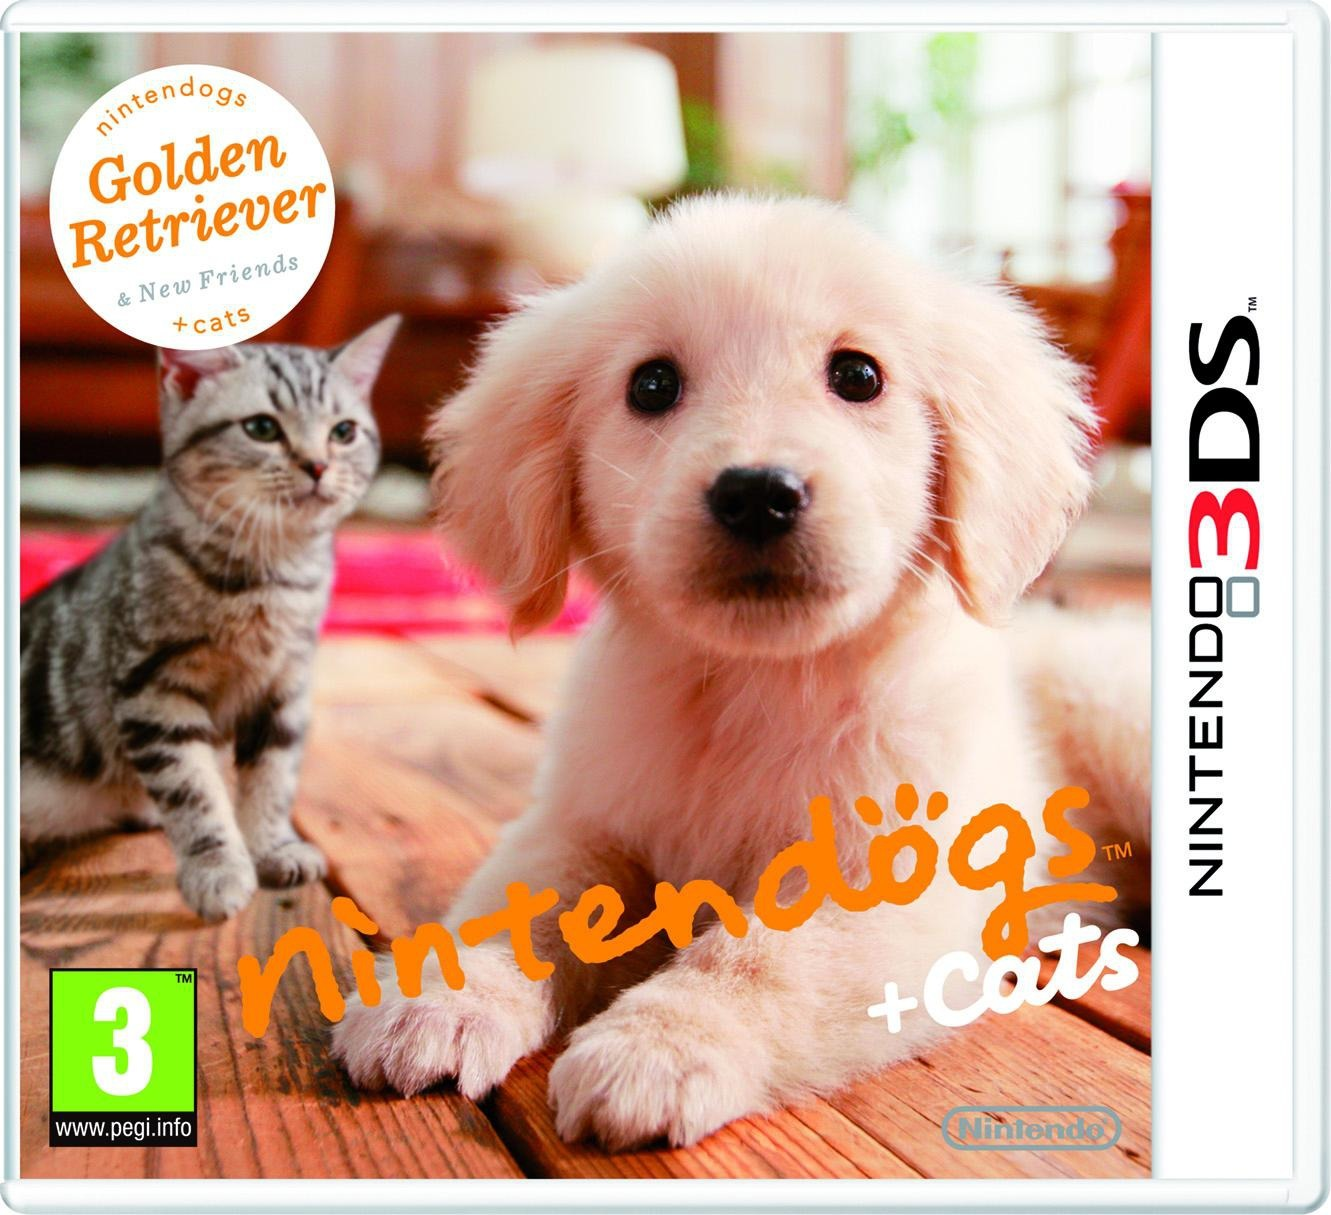 Nintendogs & Cats-golden Retriever -game 3ds- - Nintendogs & Cats - Merchandise - Nintendo - 0045496520045 -